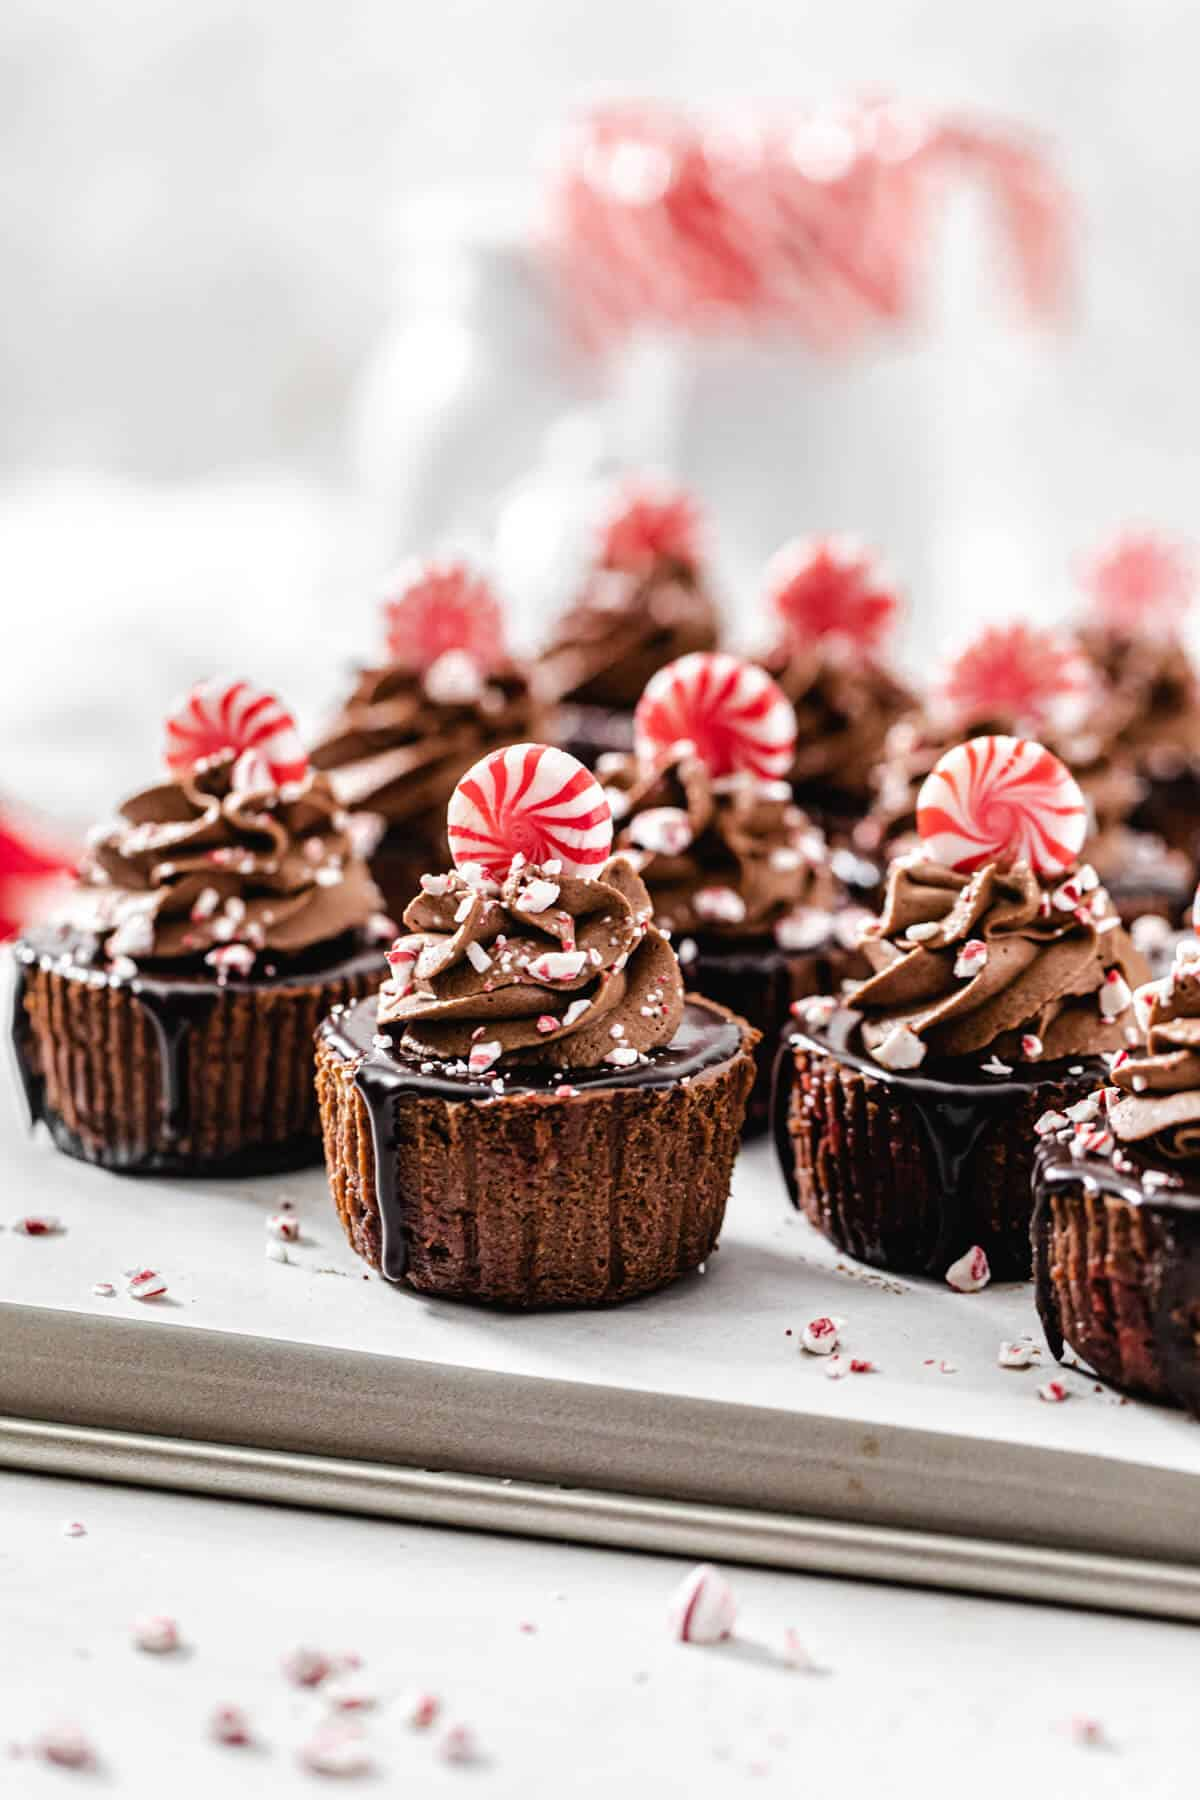 mini cheesecakes on a baking sheet with candy canes in the background